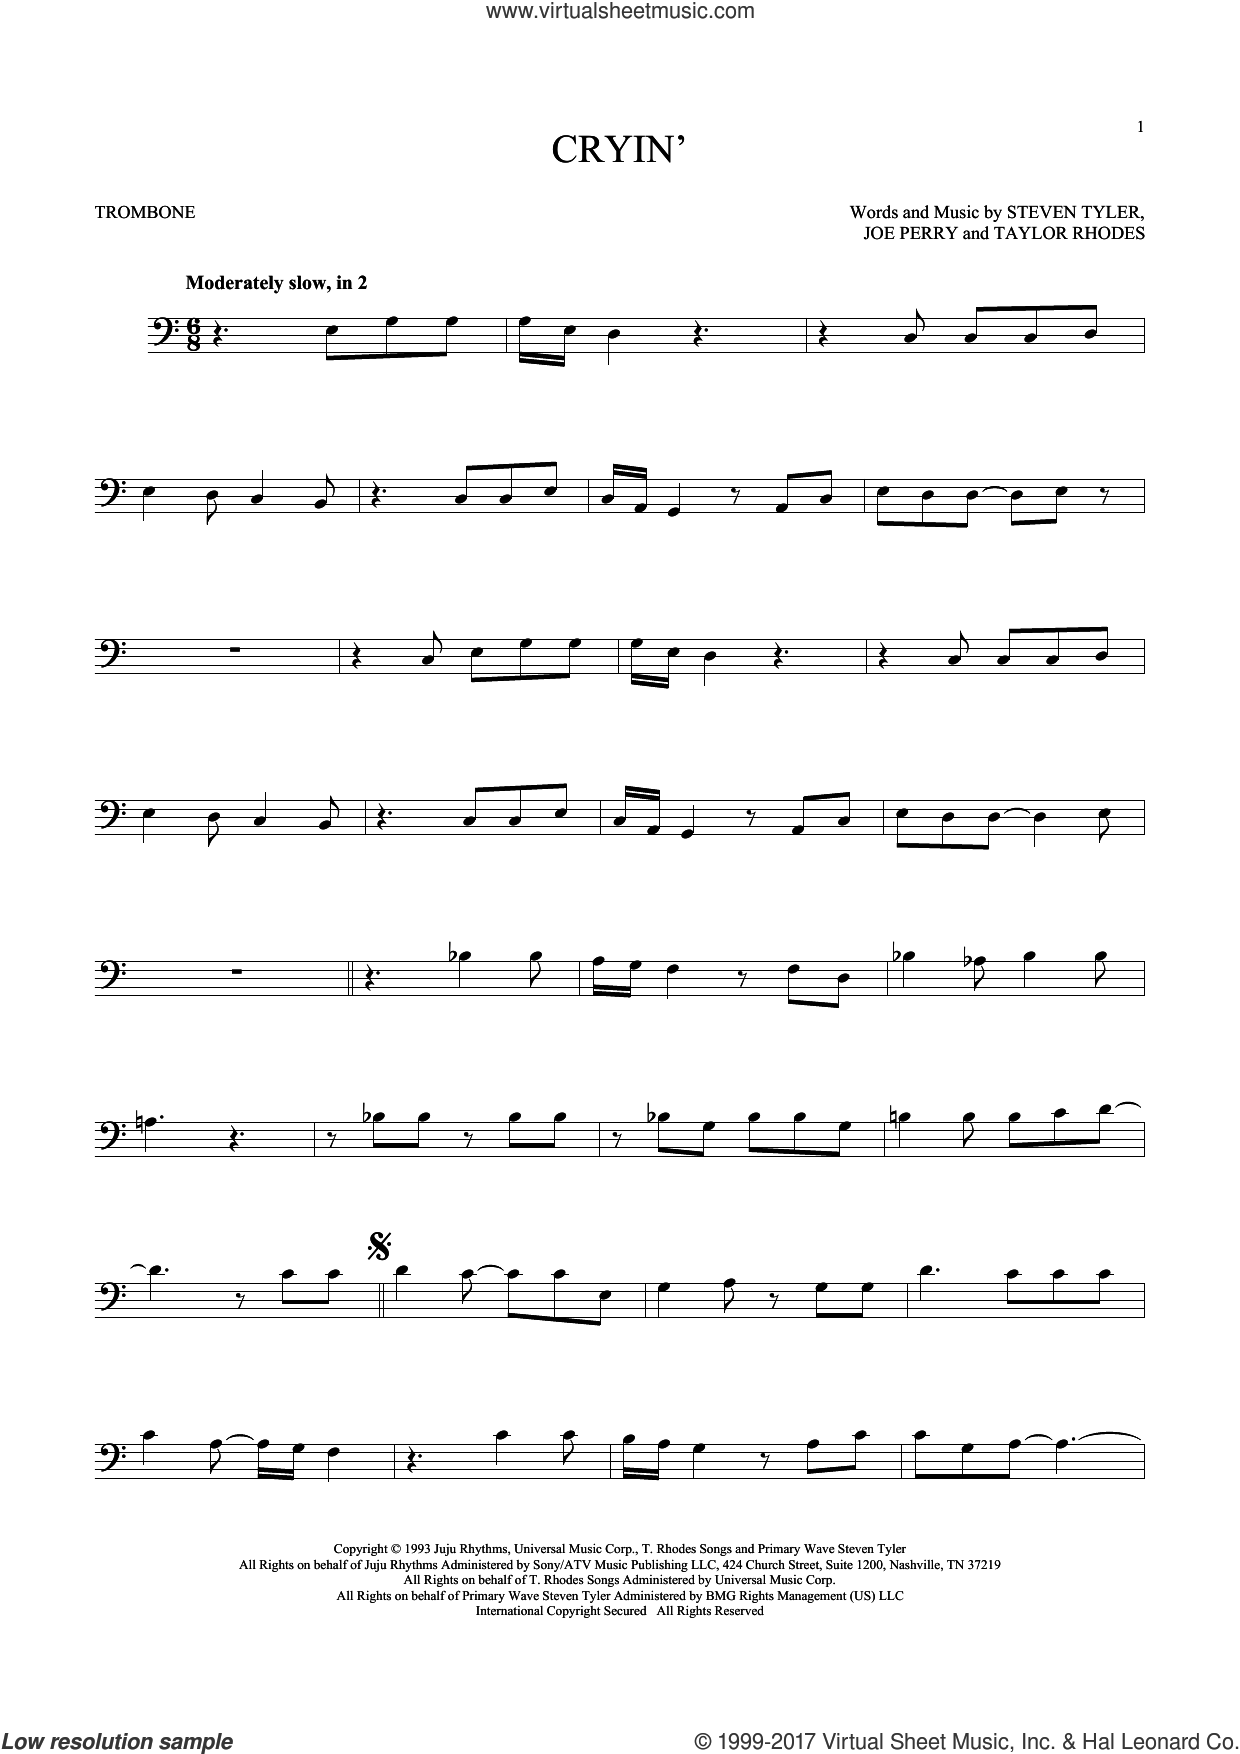 Cryin' sheet music for trombone solo by Aerosmith, Joe Perry, Steven Tyler and Taylor Rhodes, intermediate